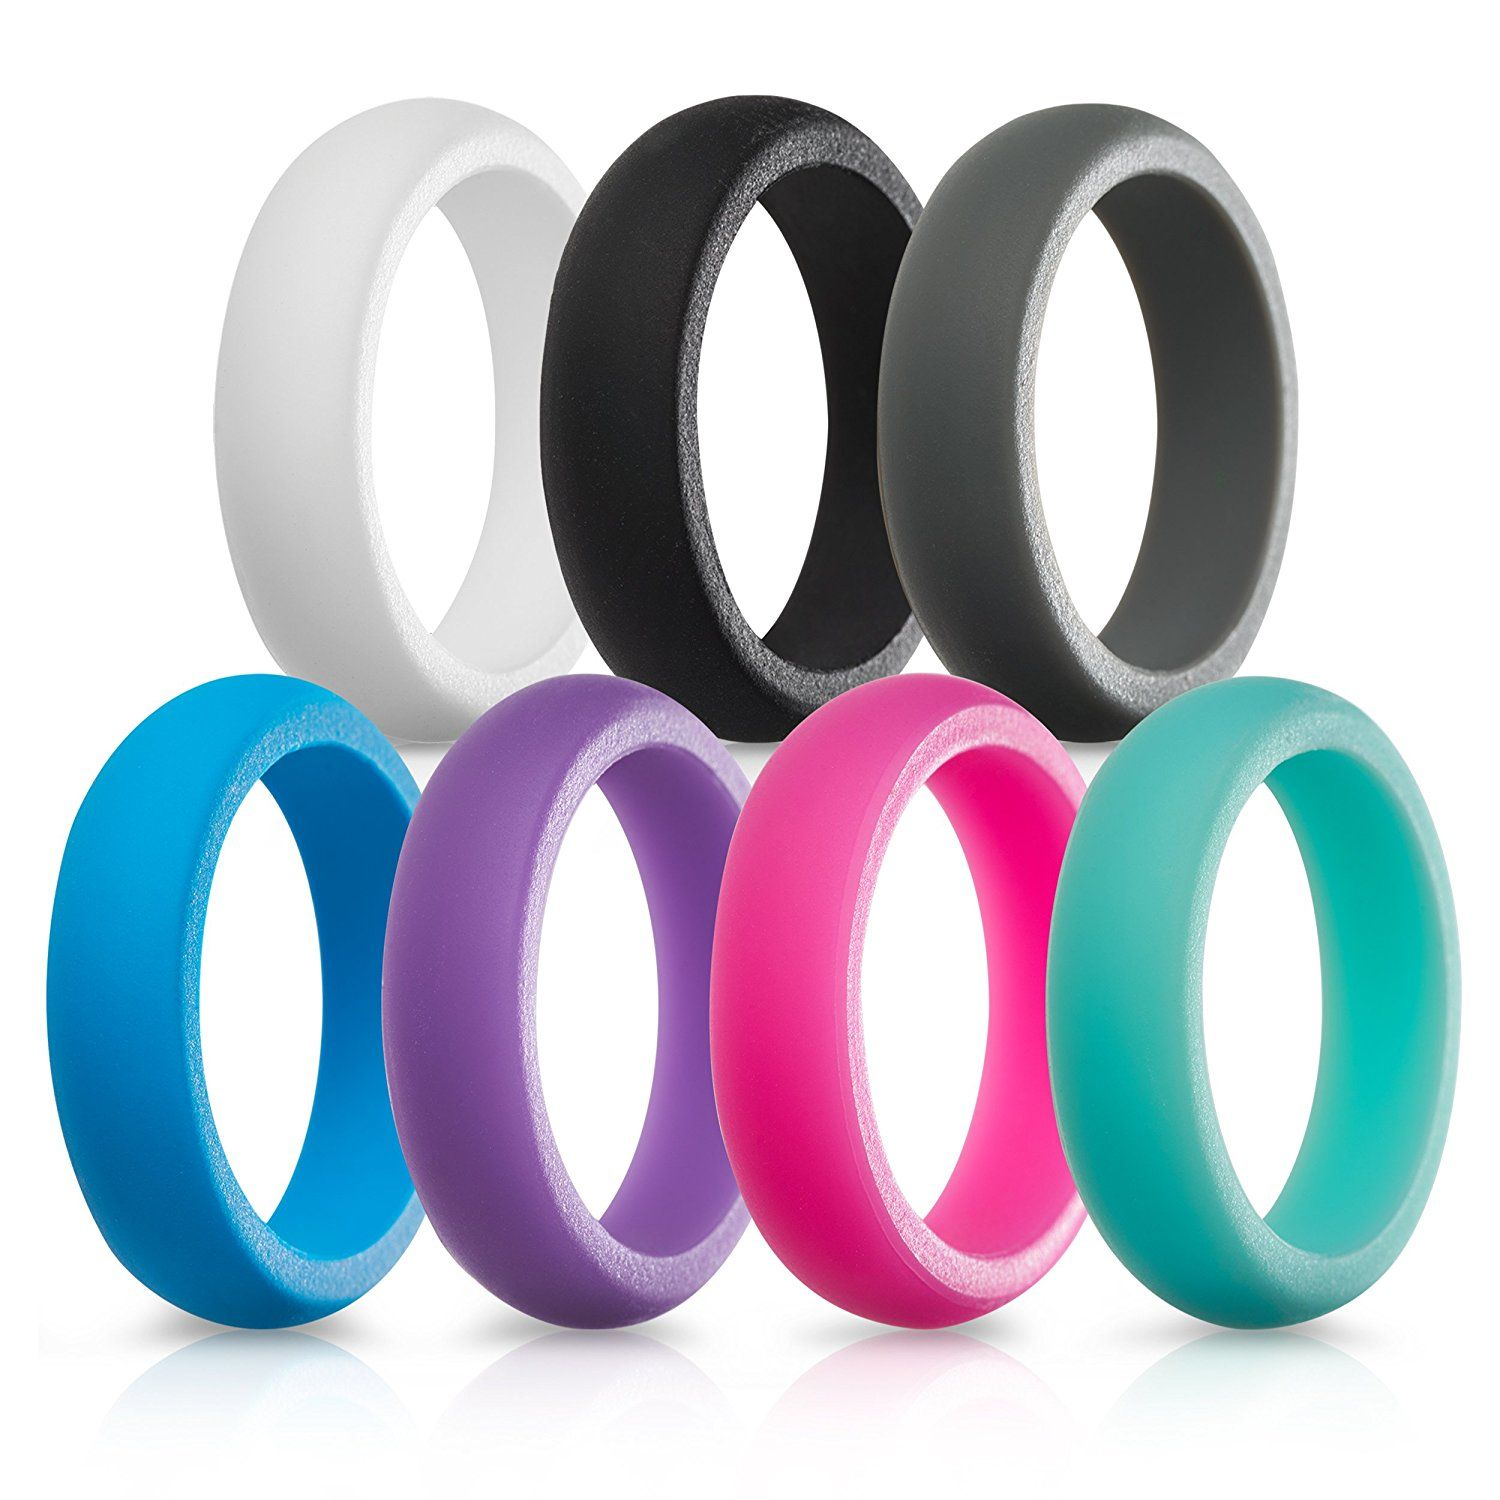 Amazoncom Silicone Wedding Rings For Women 7 Pack Sports